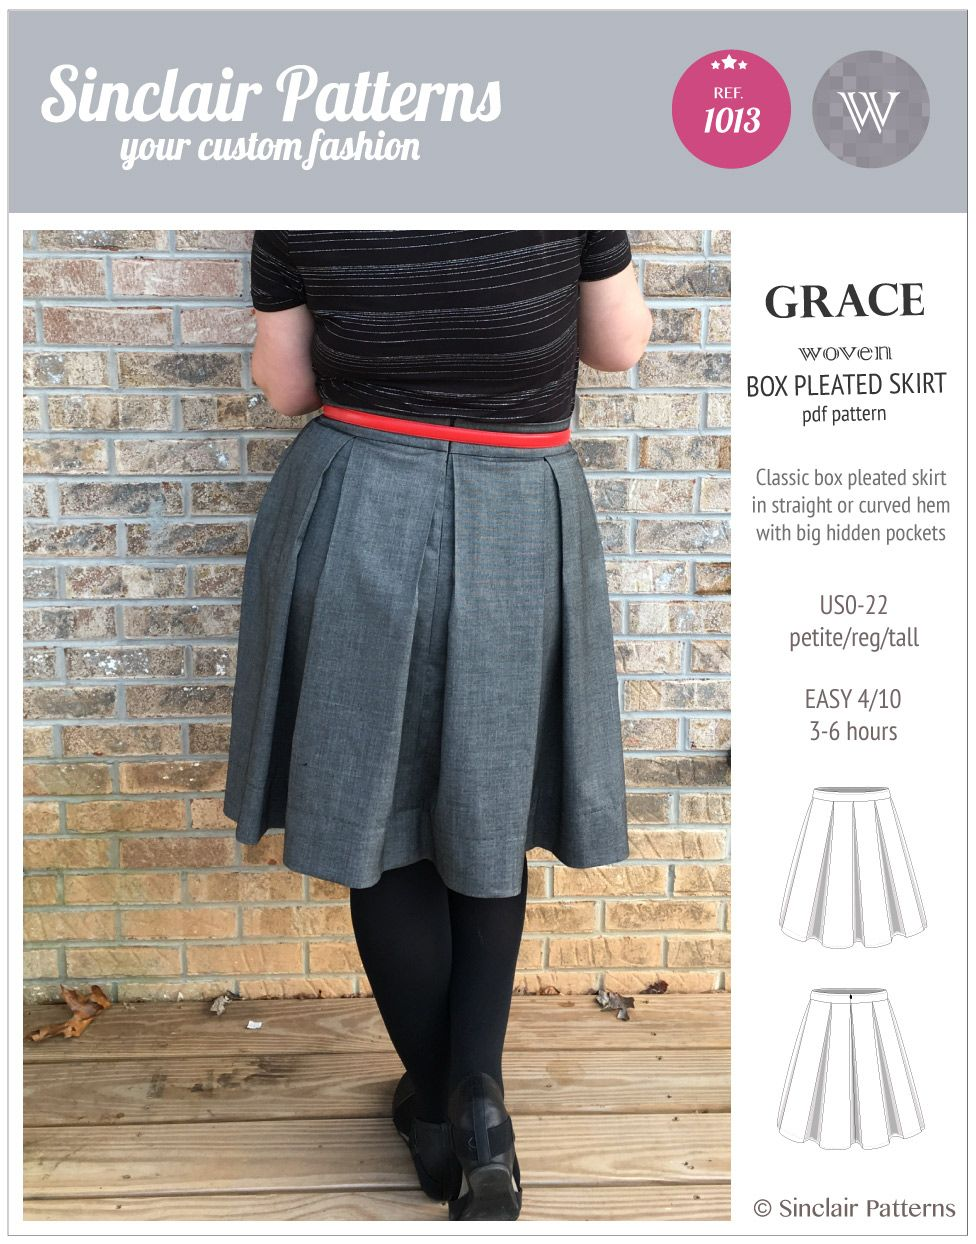 Pdf Sewing Patterns Sinclair Patterns Grace Box Pleated Lined Woven Skirt With Pockets Pdf Skirt Patterns Sewing Box Pleat Skirt Sewing Skirts